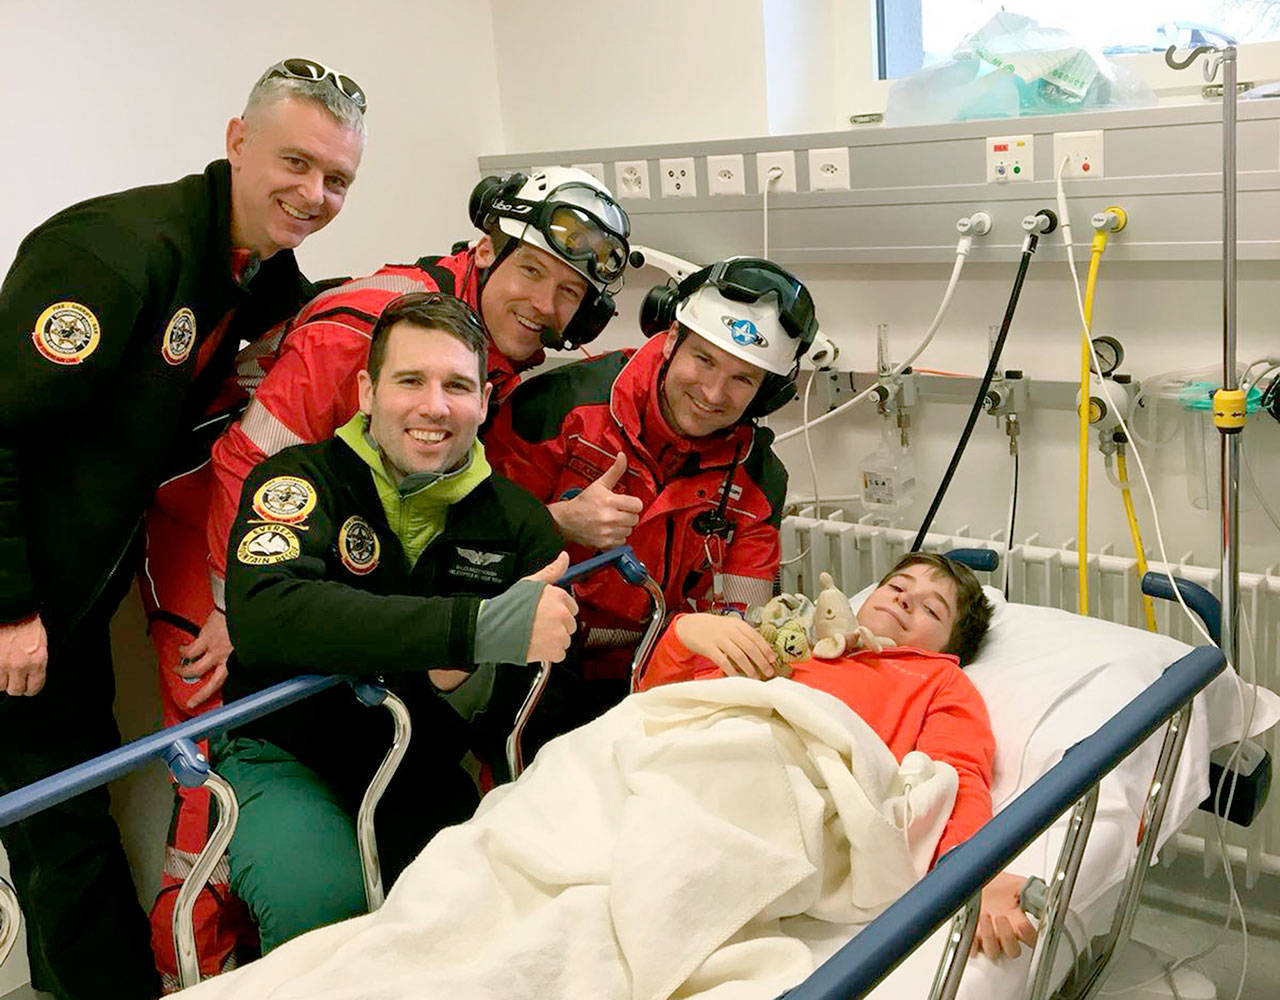 Richard Duncan (left) and Miles Mcdonough (second from left) of the Snohomish County Sheriff's Office helicopter rescue team pose with Swiss helicopter crew members Peter Lackermeier (third from left) and Oliver Kreuzer with the boy they helped rescue after a skiing accident on Rothorn mountain in Switzerland.